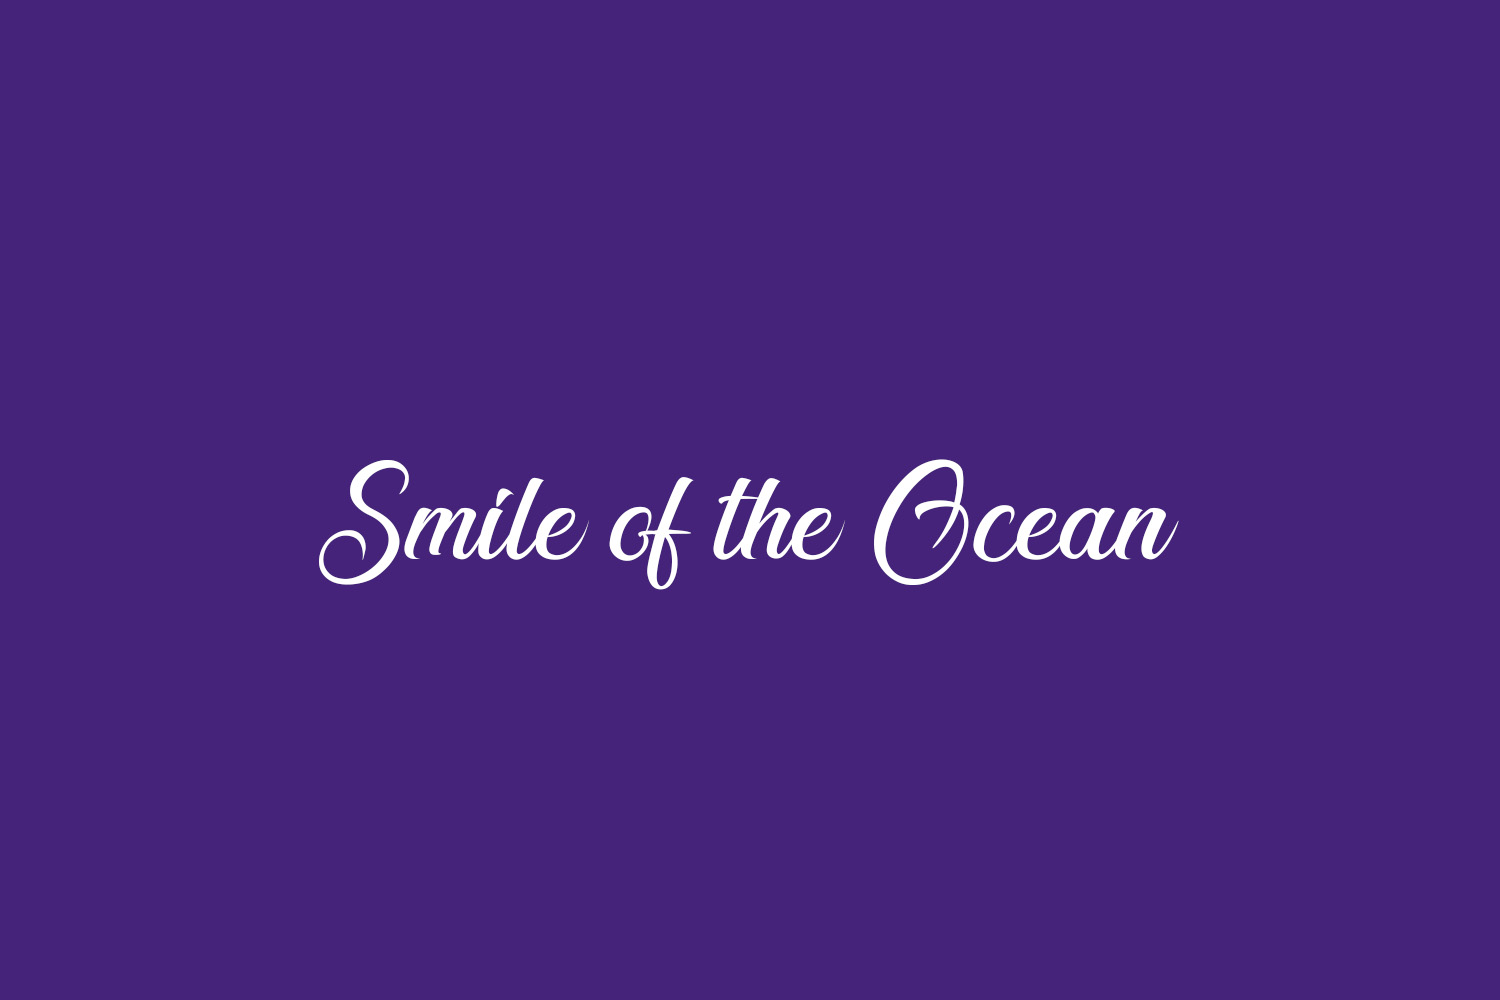 Smile of the Ocean Free Font